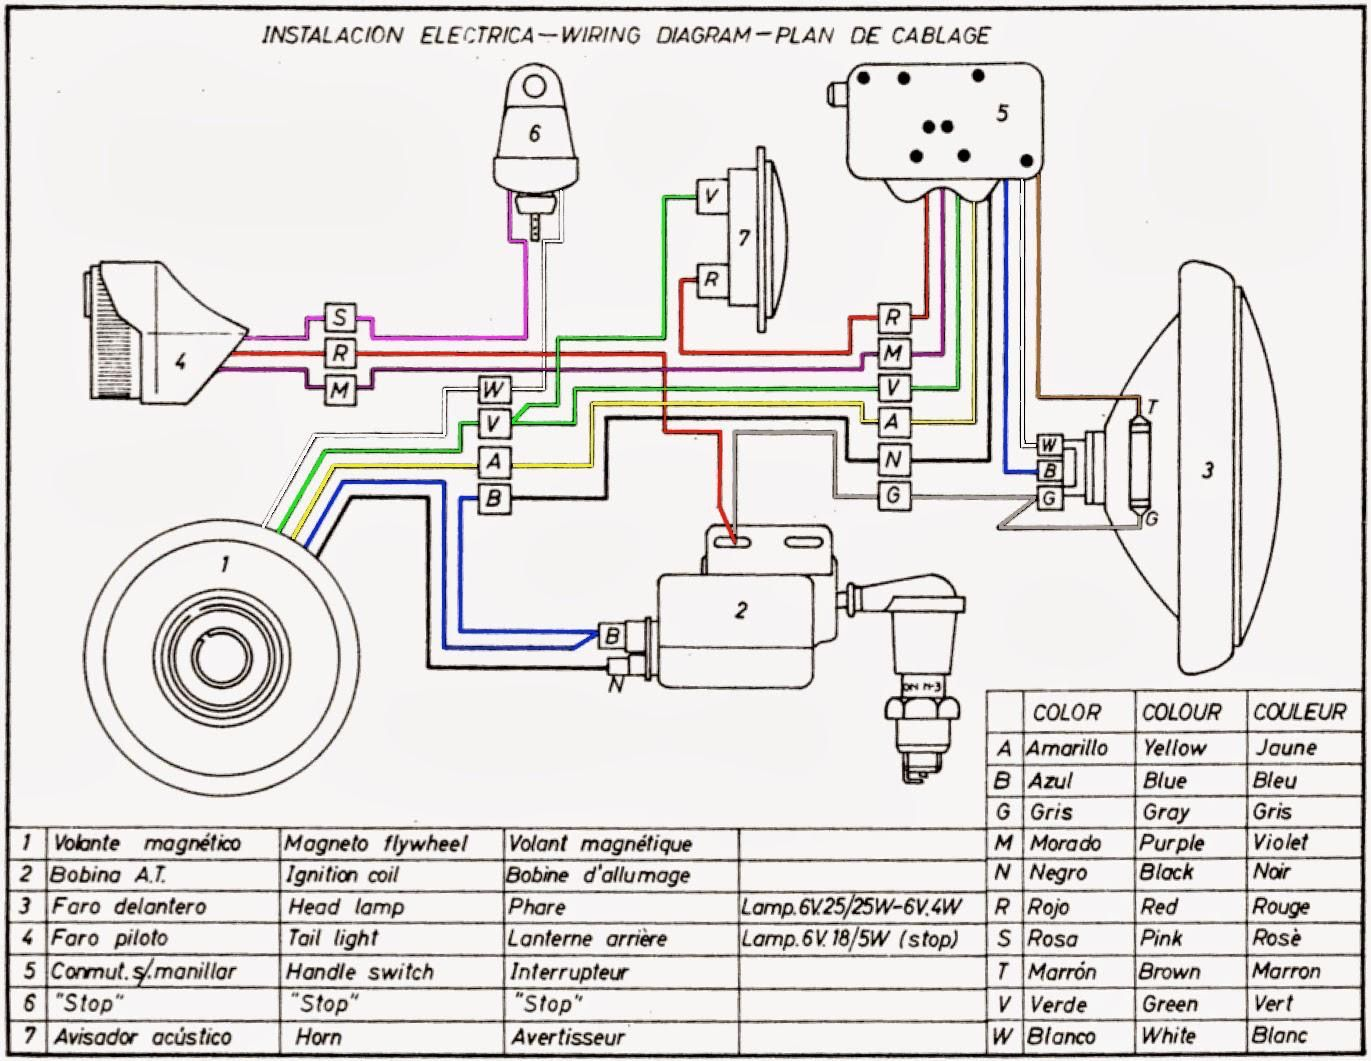 small resolution of puch wiring diagram wiring diagrampuch wiring diagrams for motorcycles z3 wiring library diagrambultaco wiring diagram wiring